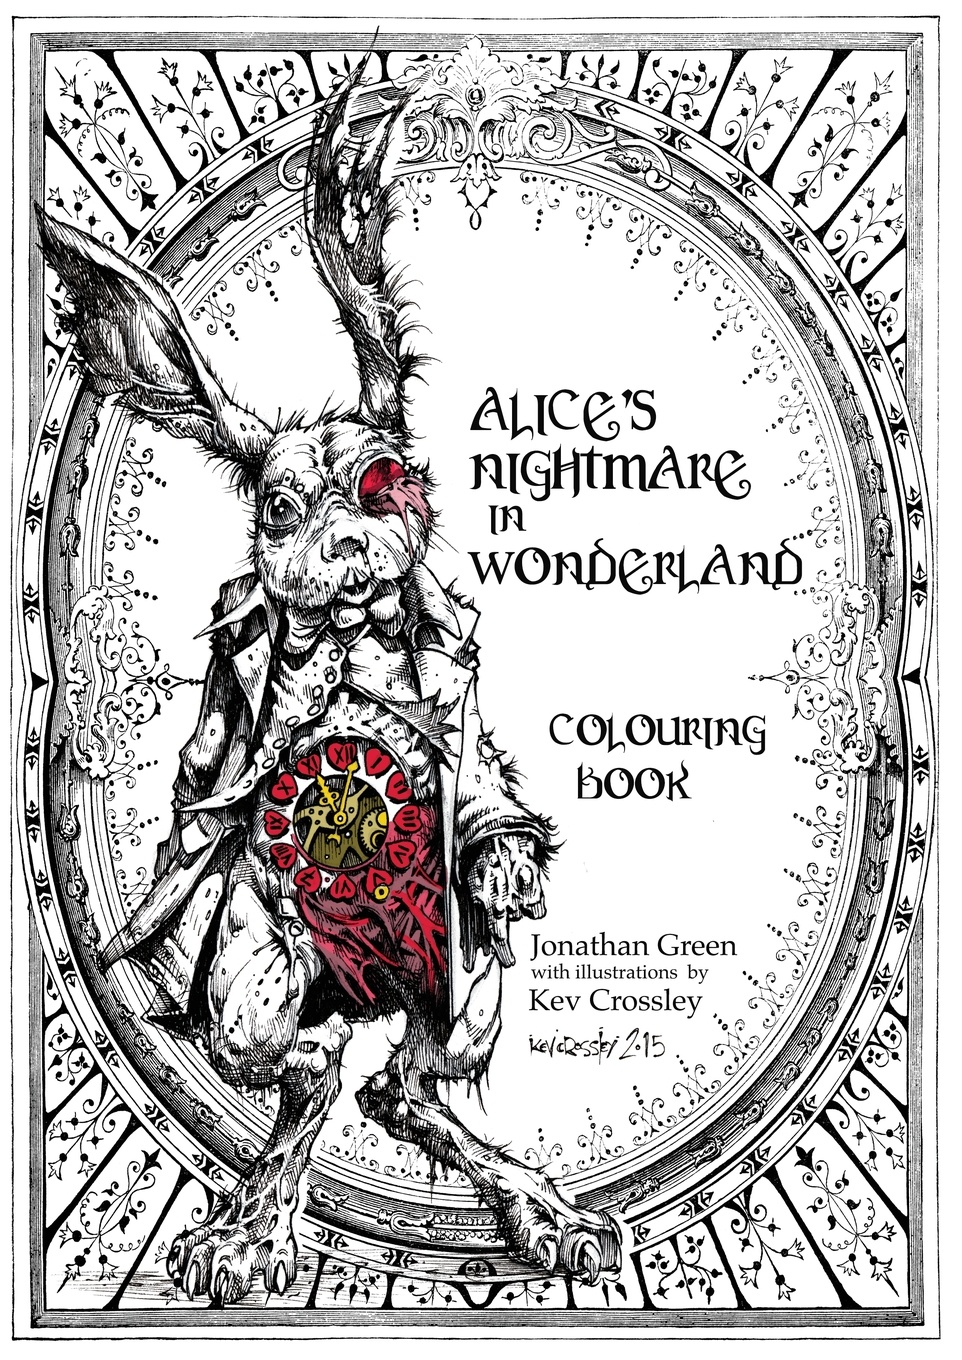 Jonathan Green Alices Nightmare in Wonderland Colouring Book